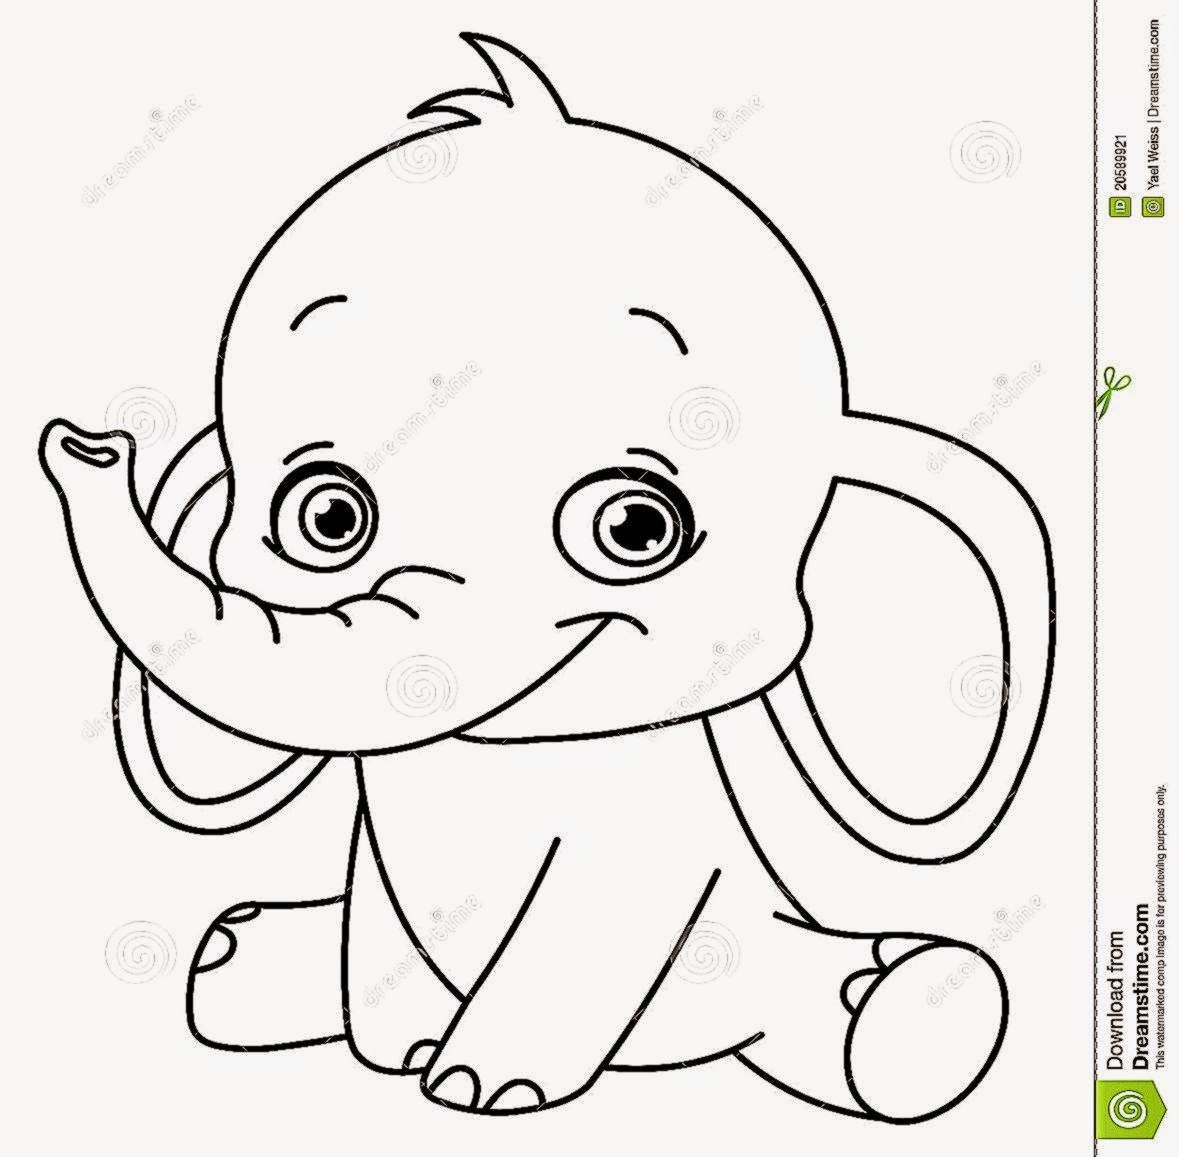 Elephant Face Coloring Pages